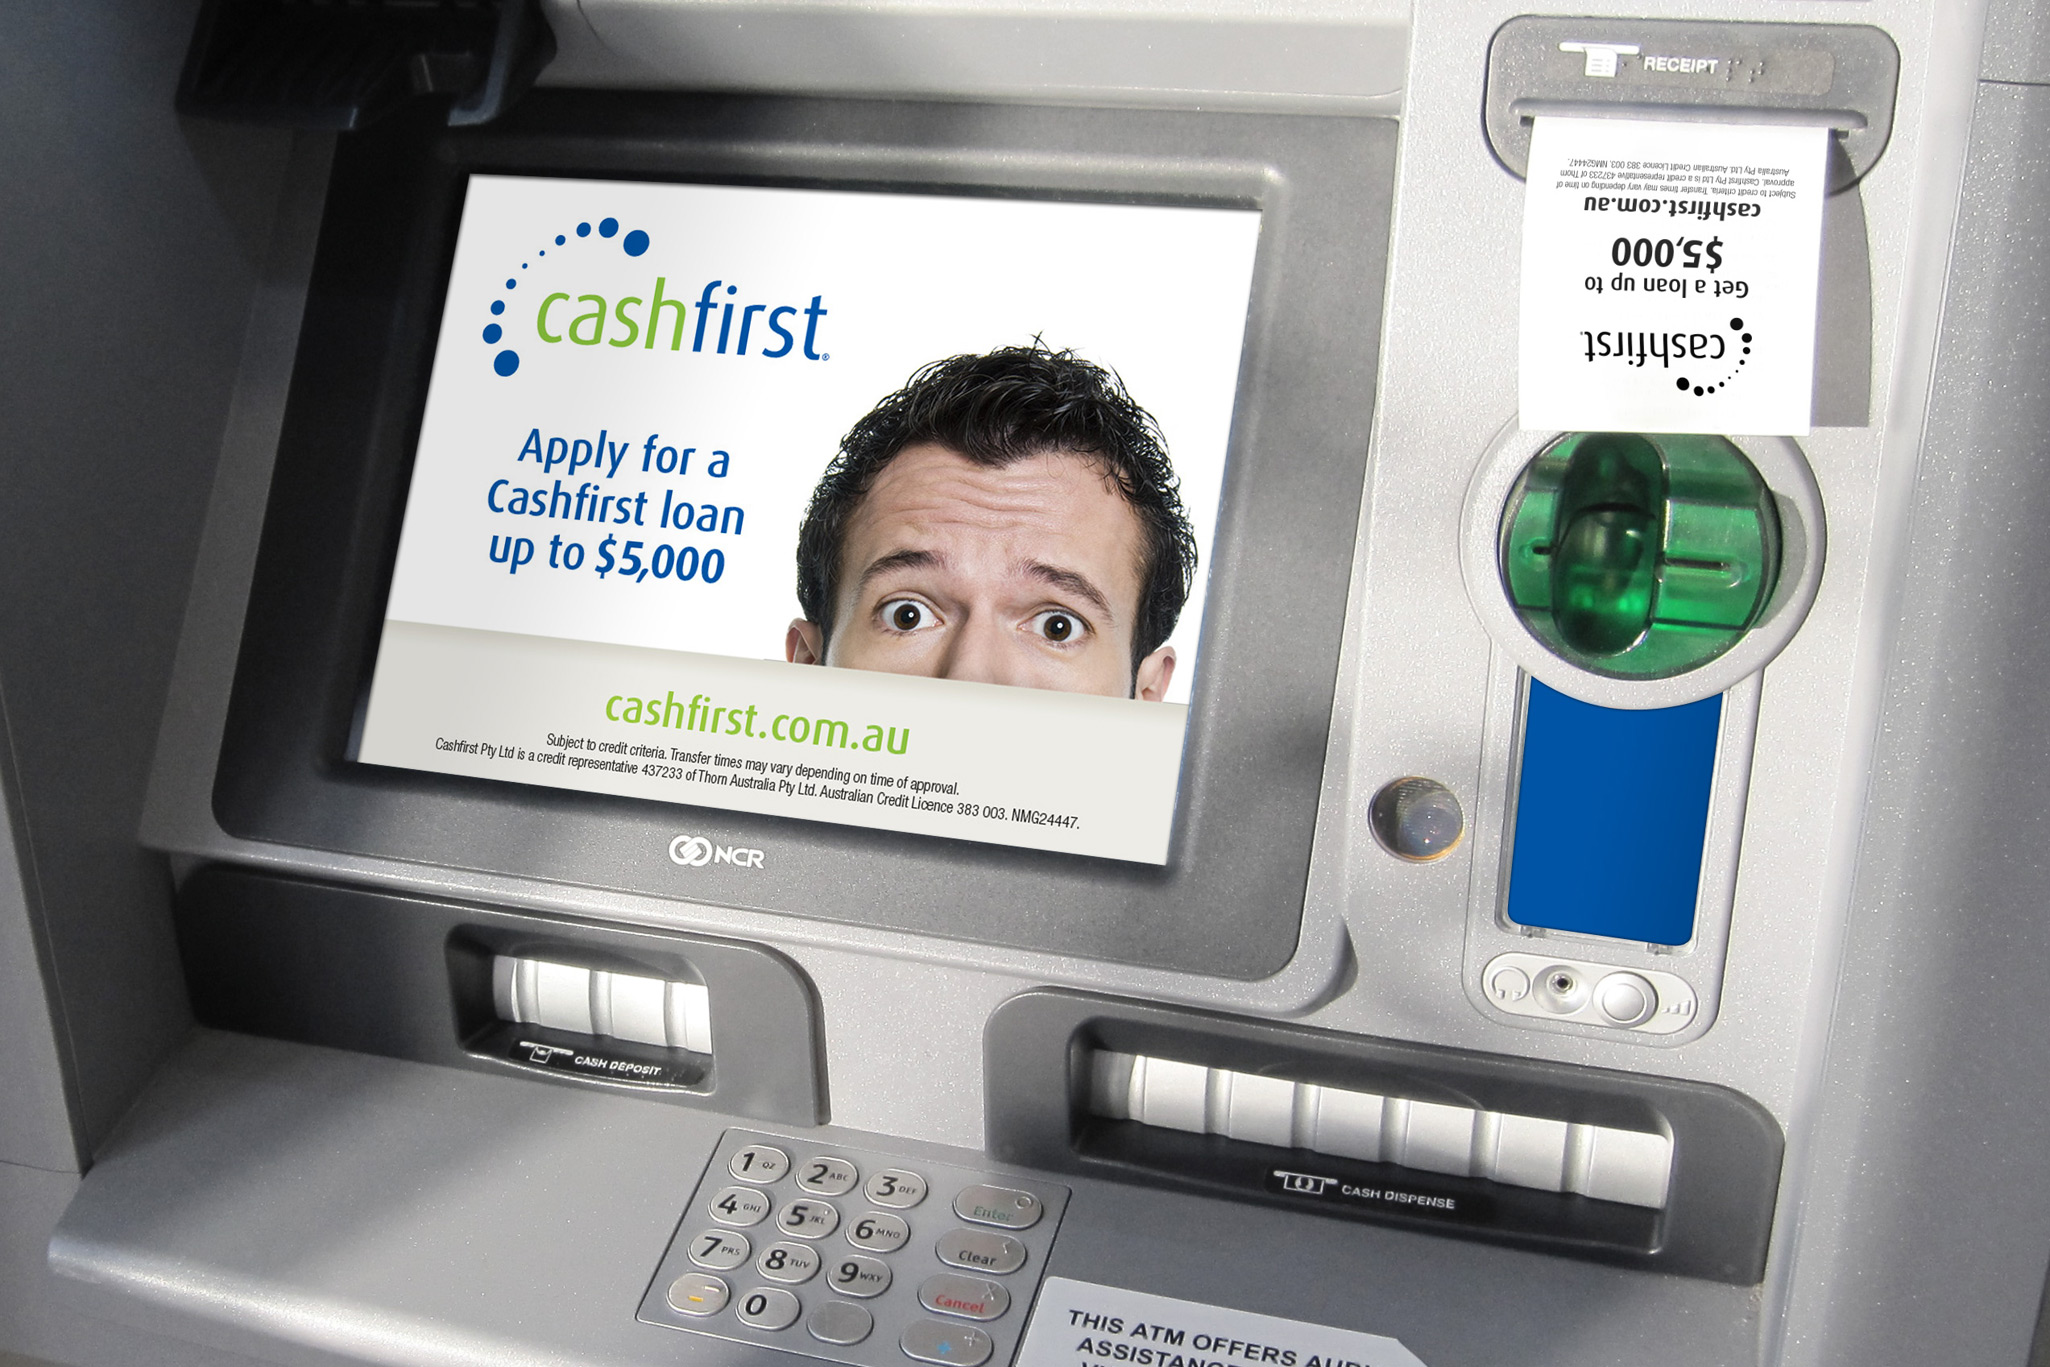 Cashfirst_ATM_Screen_design_1.jpg